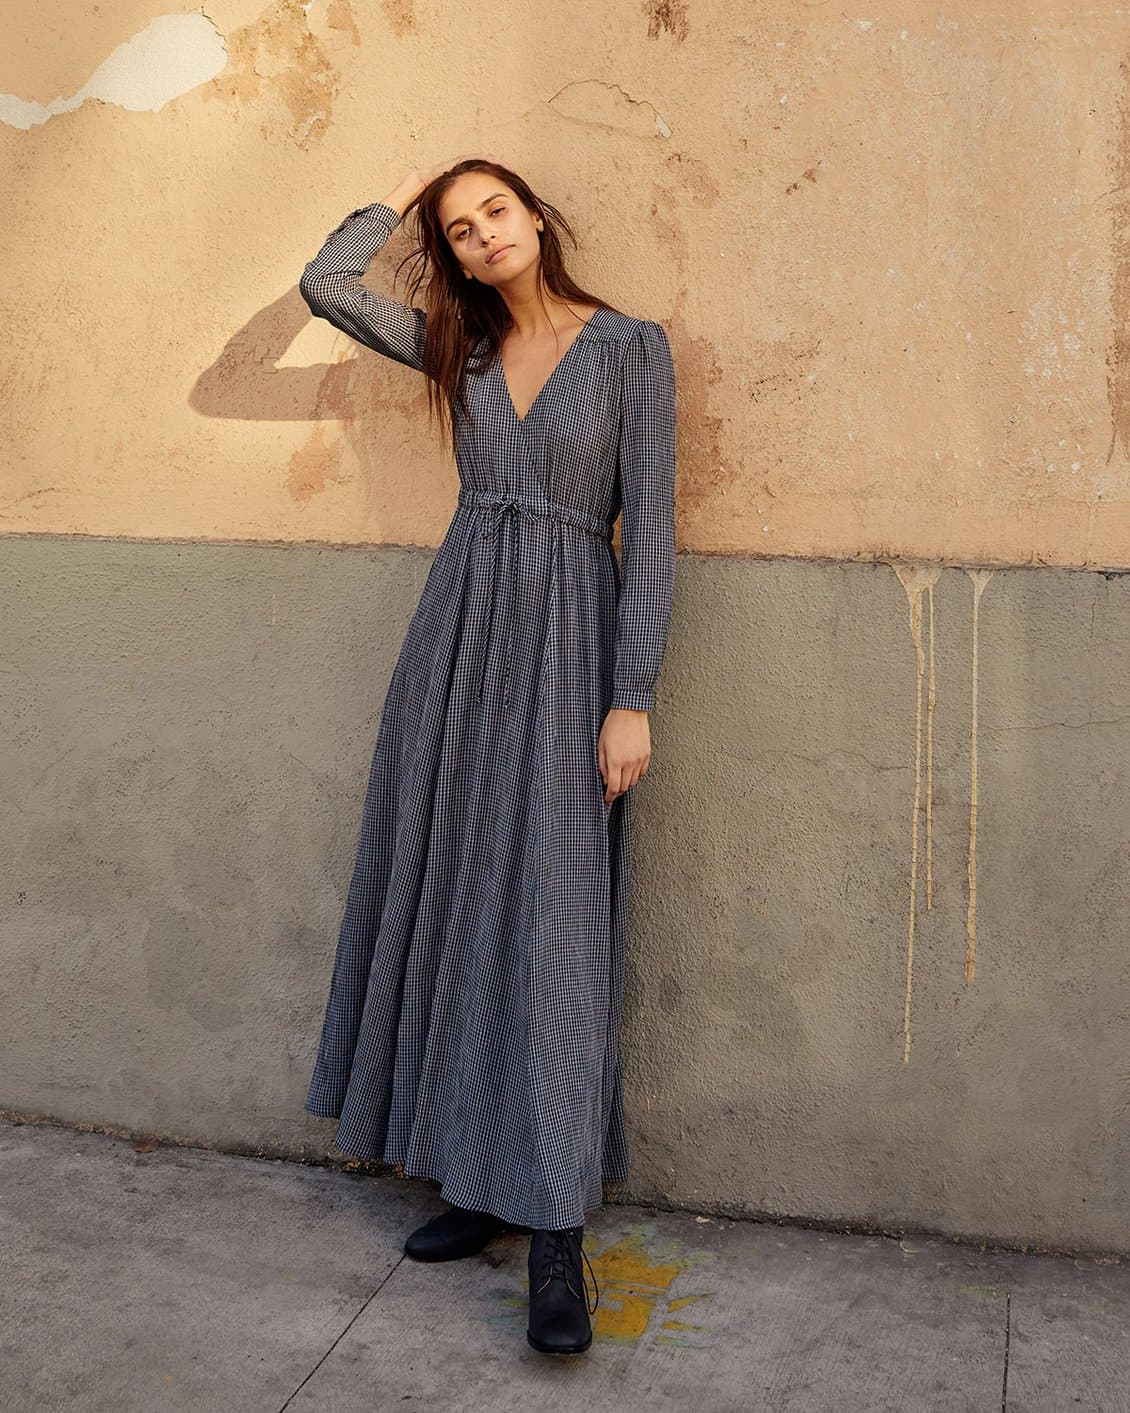 ethical American fashion brands